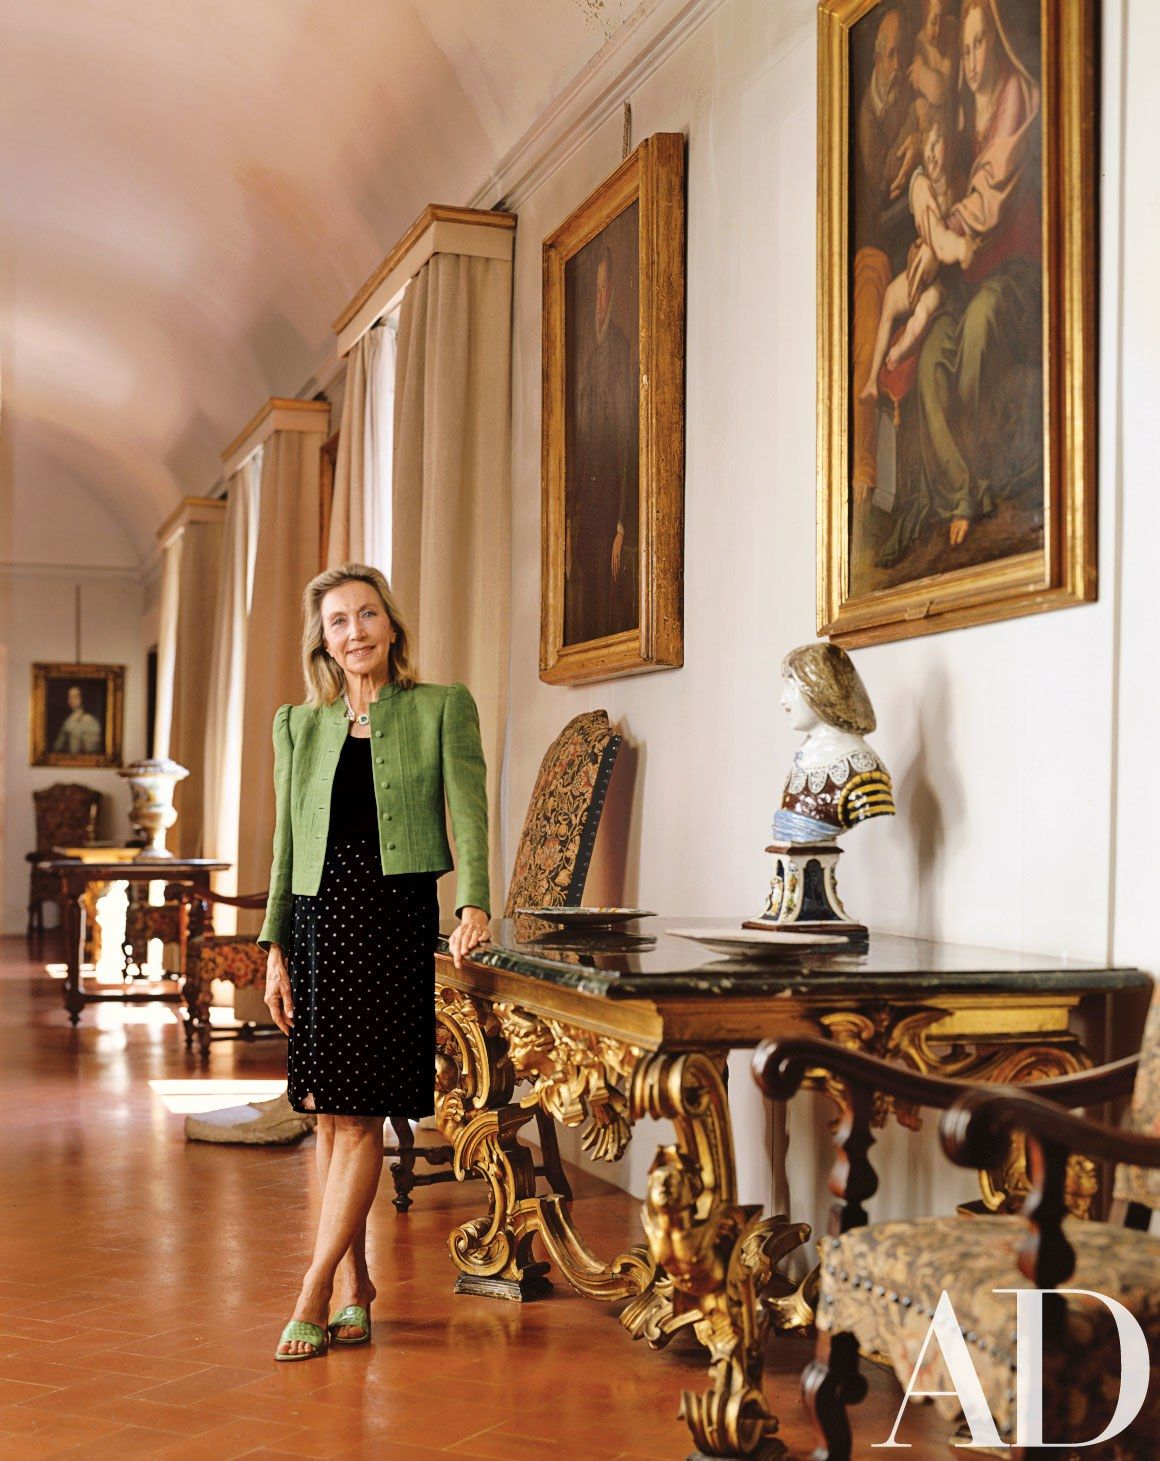 477d25eecd Emilio Pucci's Widow Refreshes Their Ancestral Home in Florence Photos |  Architectural Digest